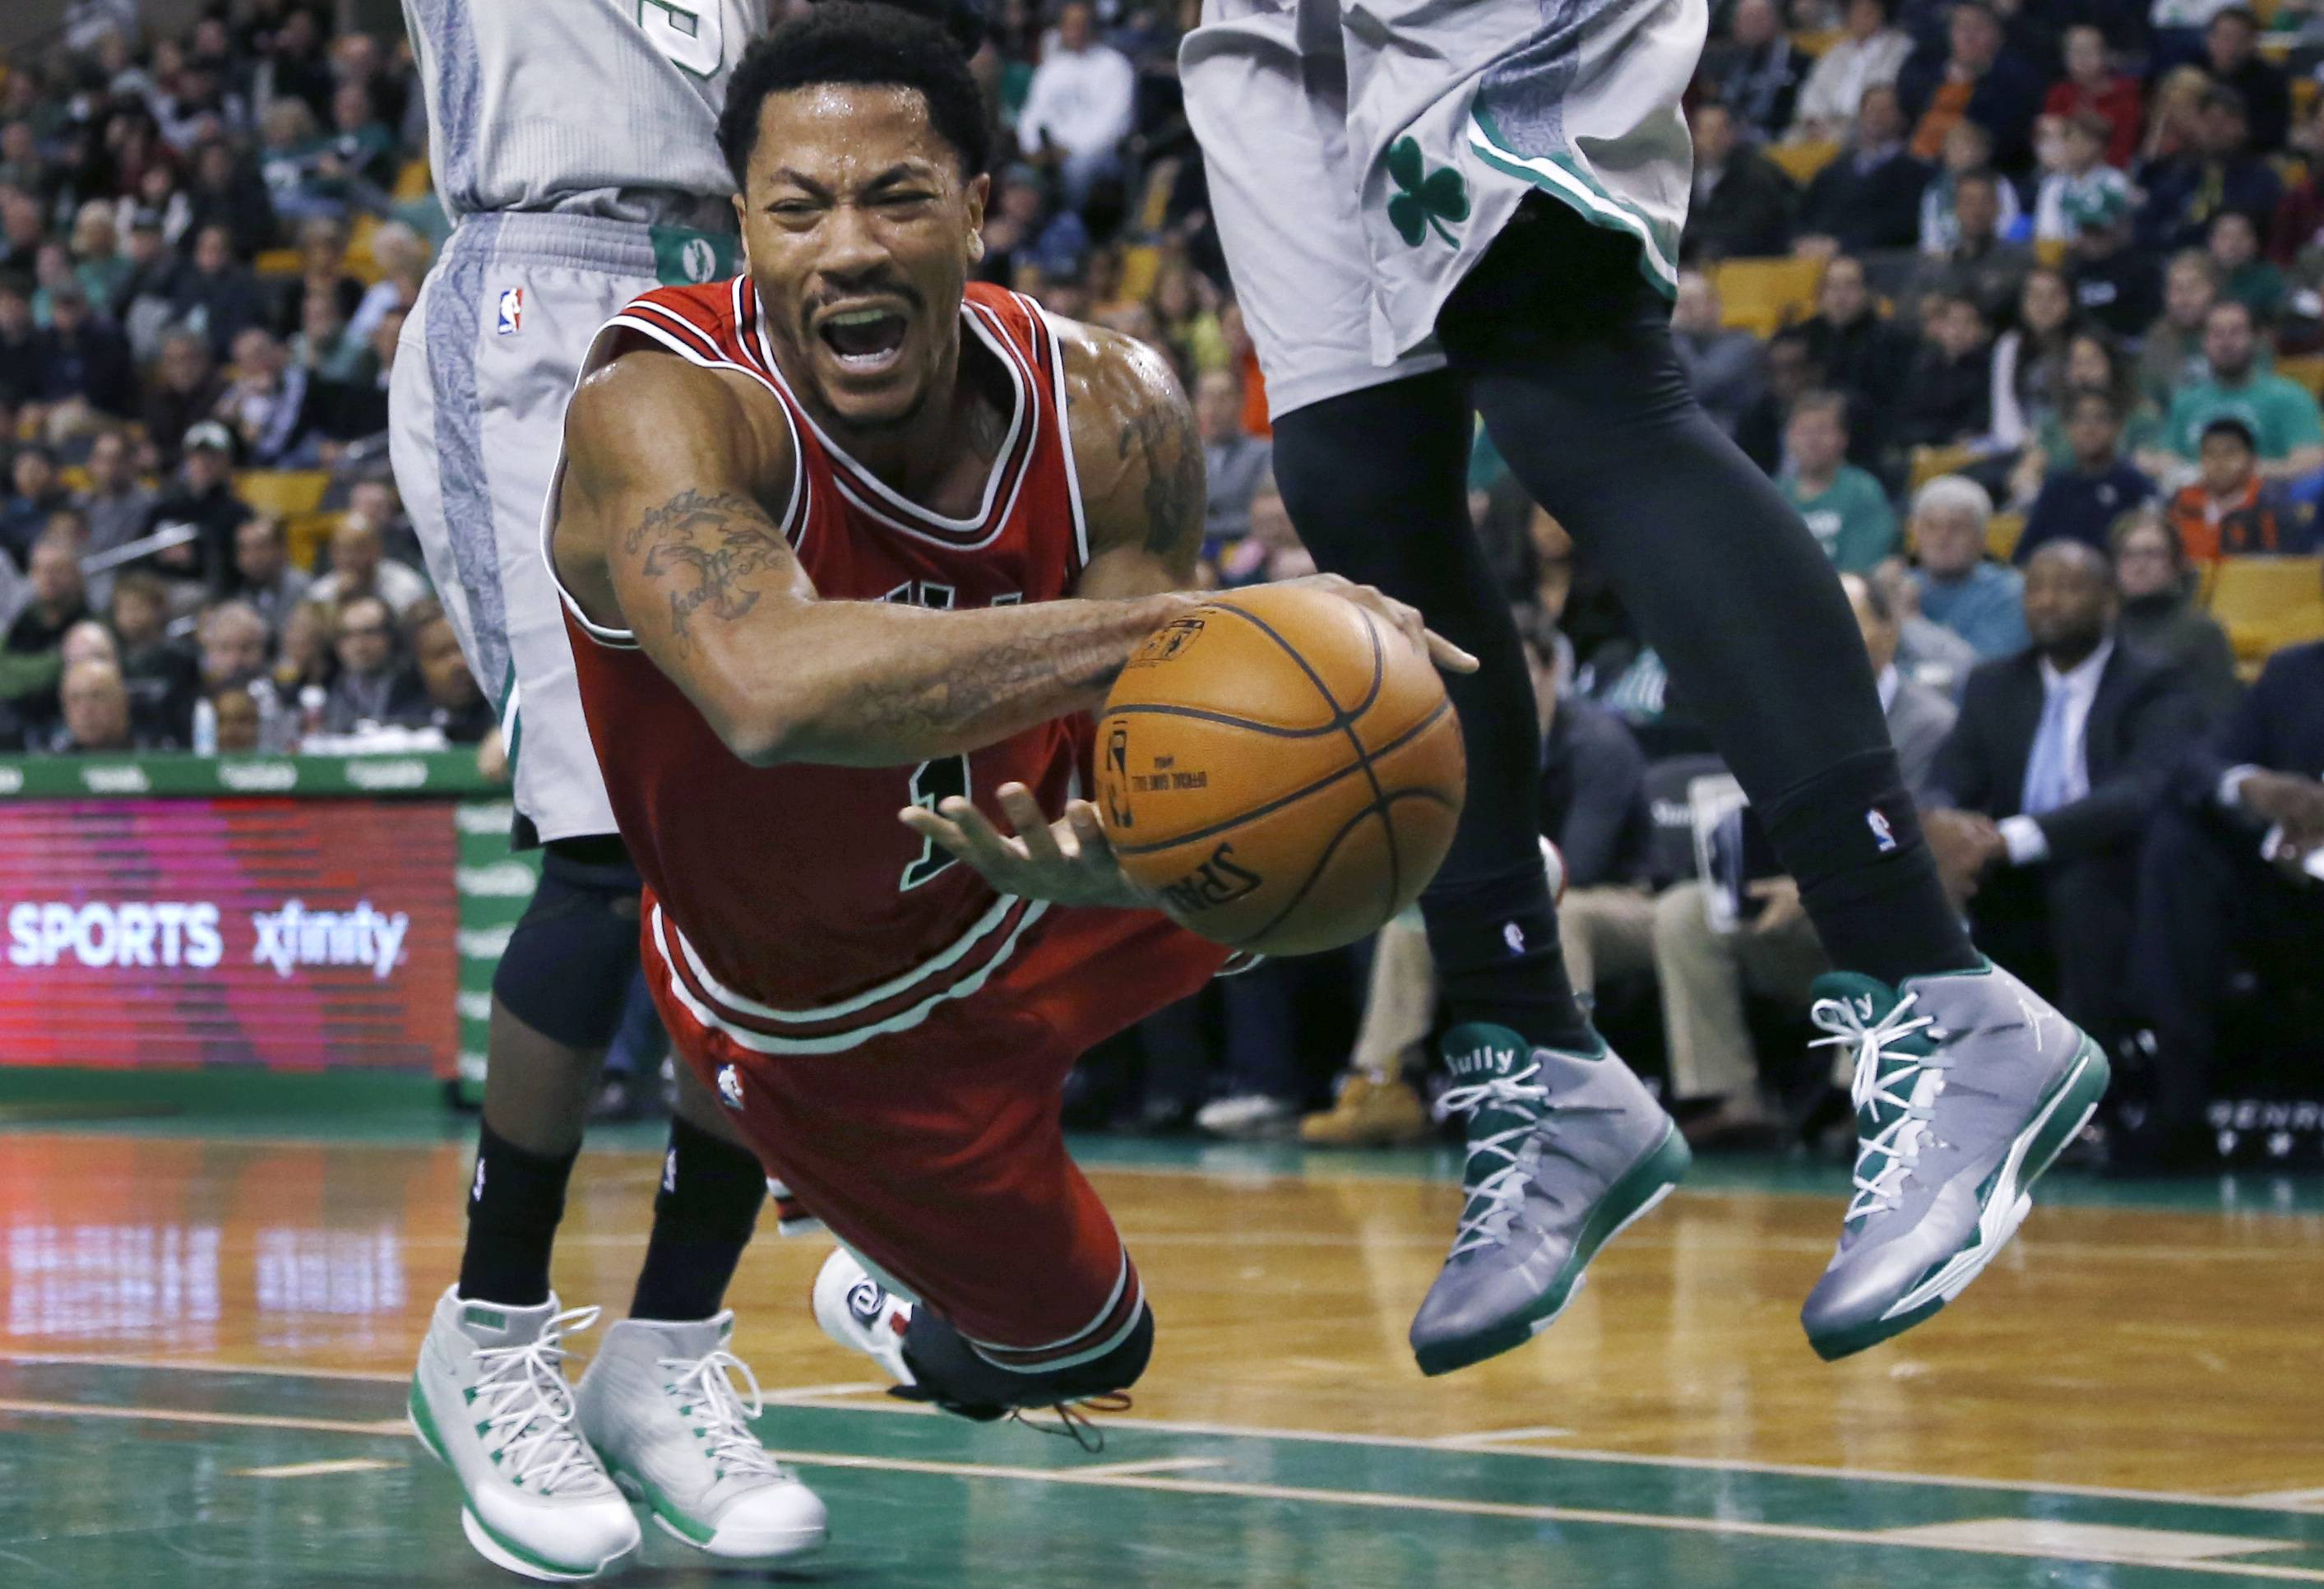 Chicago Bulls guard Derrick Rose falls after being tripped while driving against the Boston Celtics in the first half of a basketball game in Boston, Friday, Nov. 28, 2014. (AP Photo/Elise Amendola)